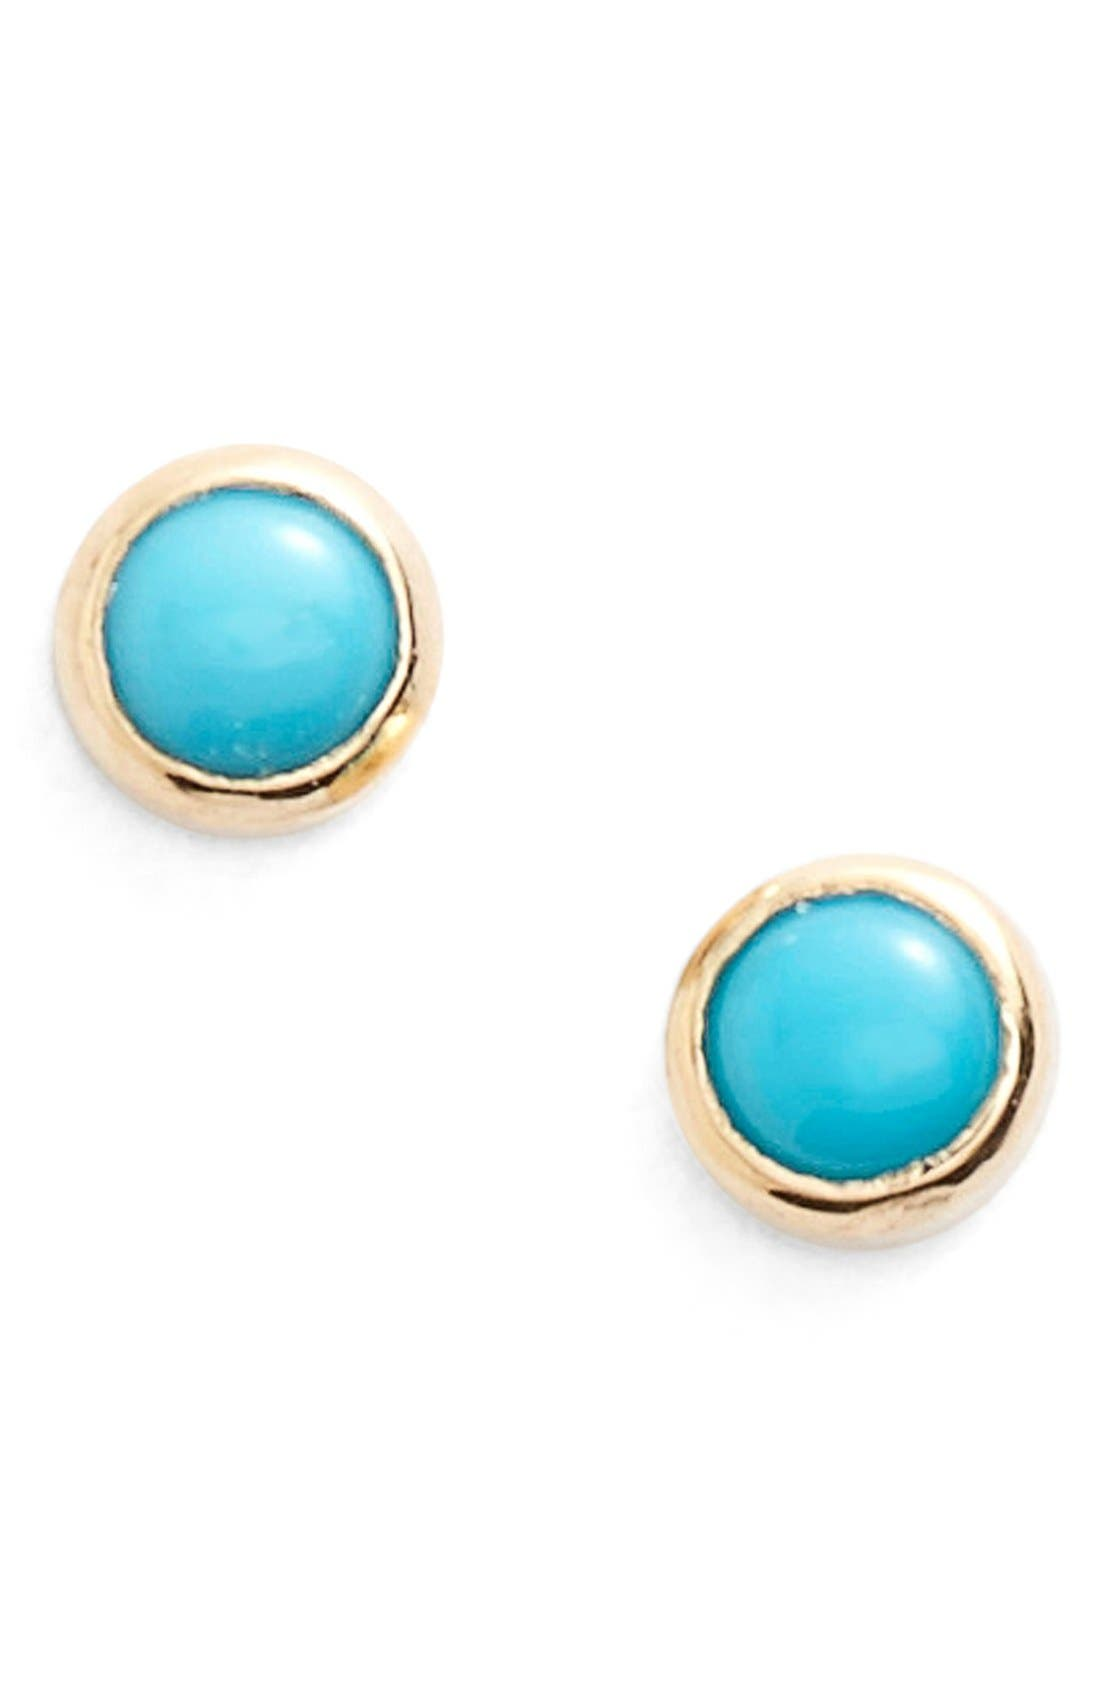 Turquoise Stud Earrings,                             Main thumbnail 1, color,                             Turquoise